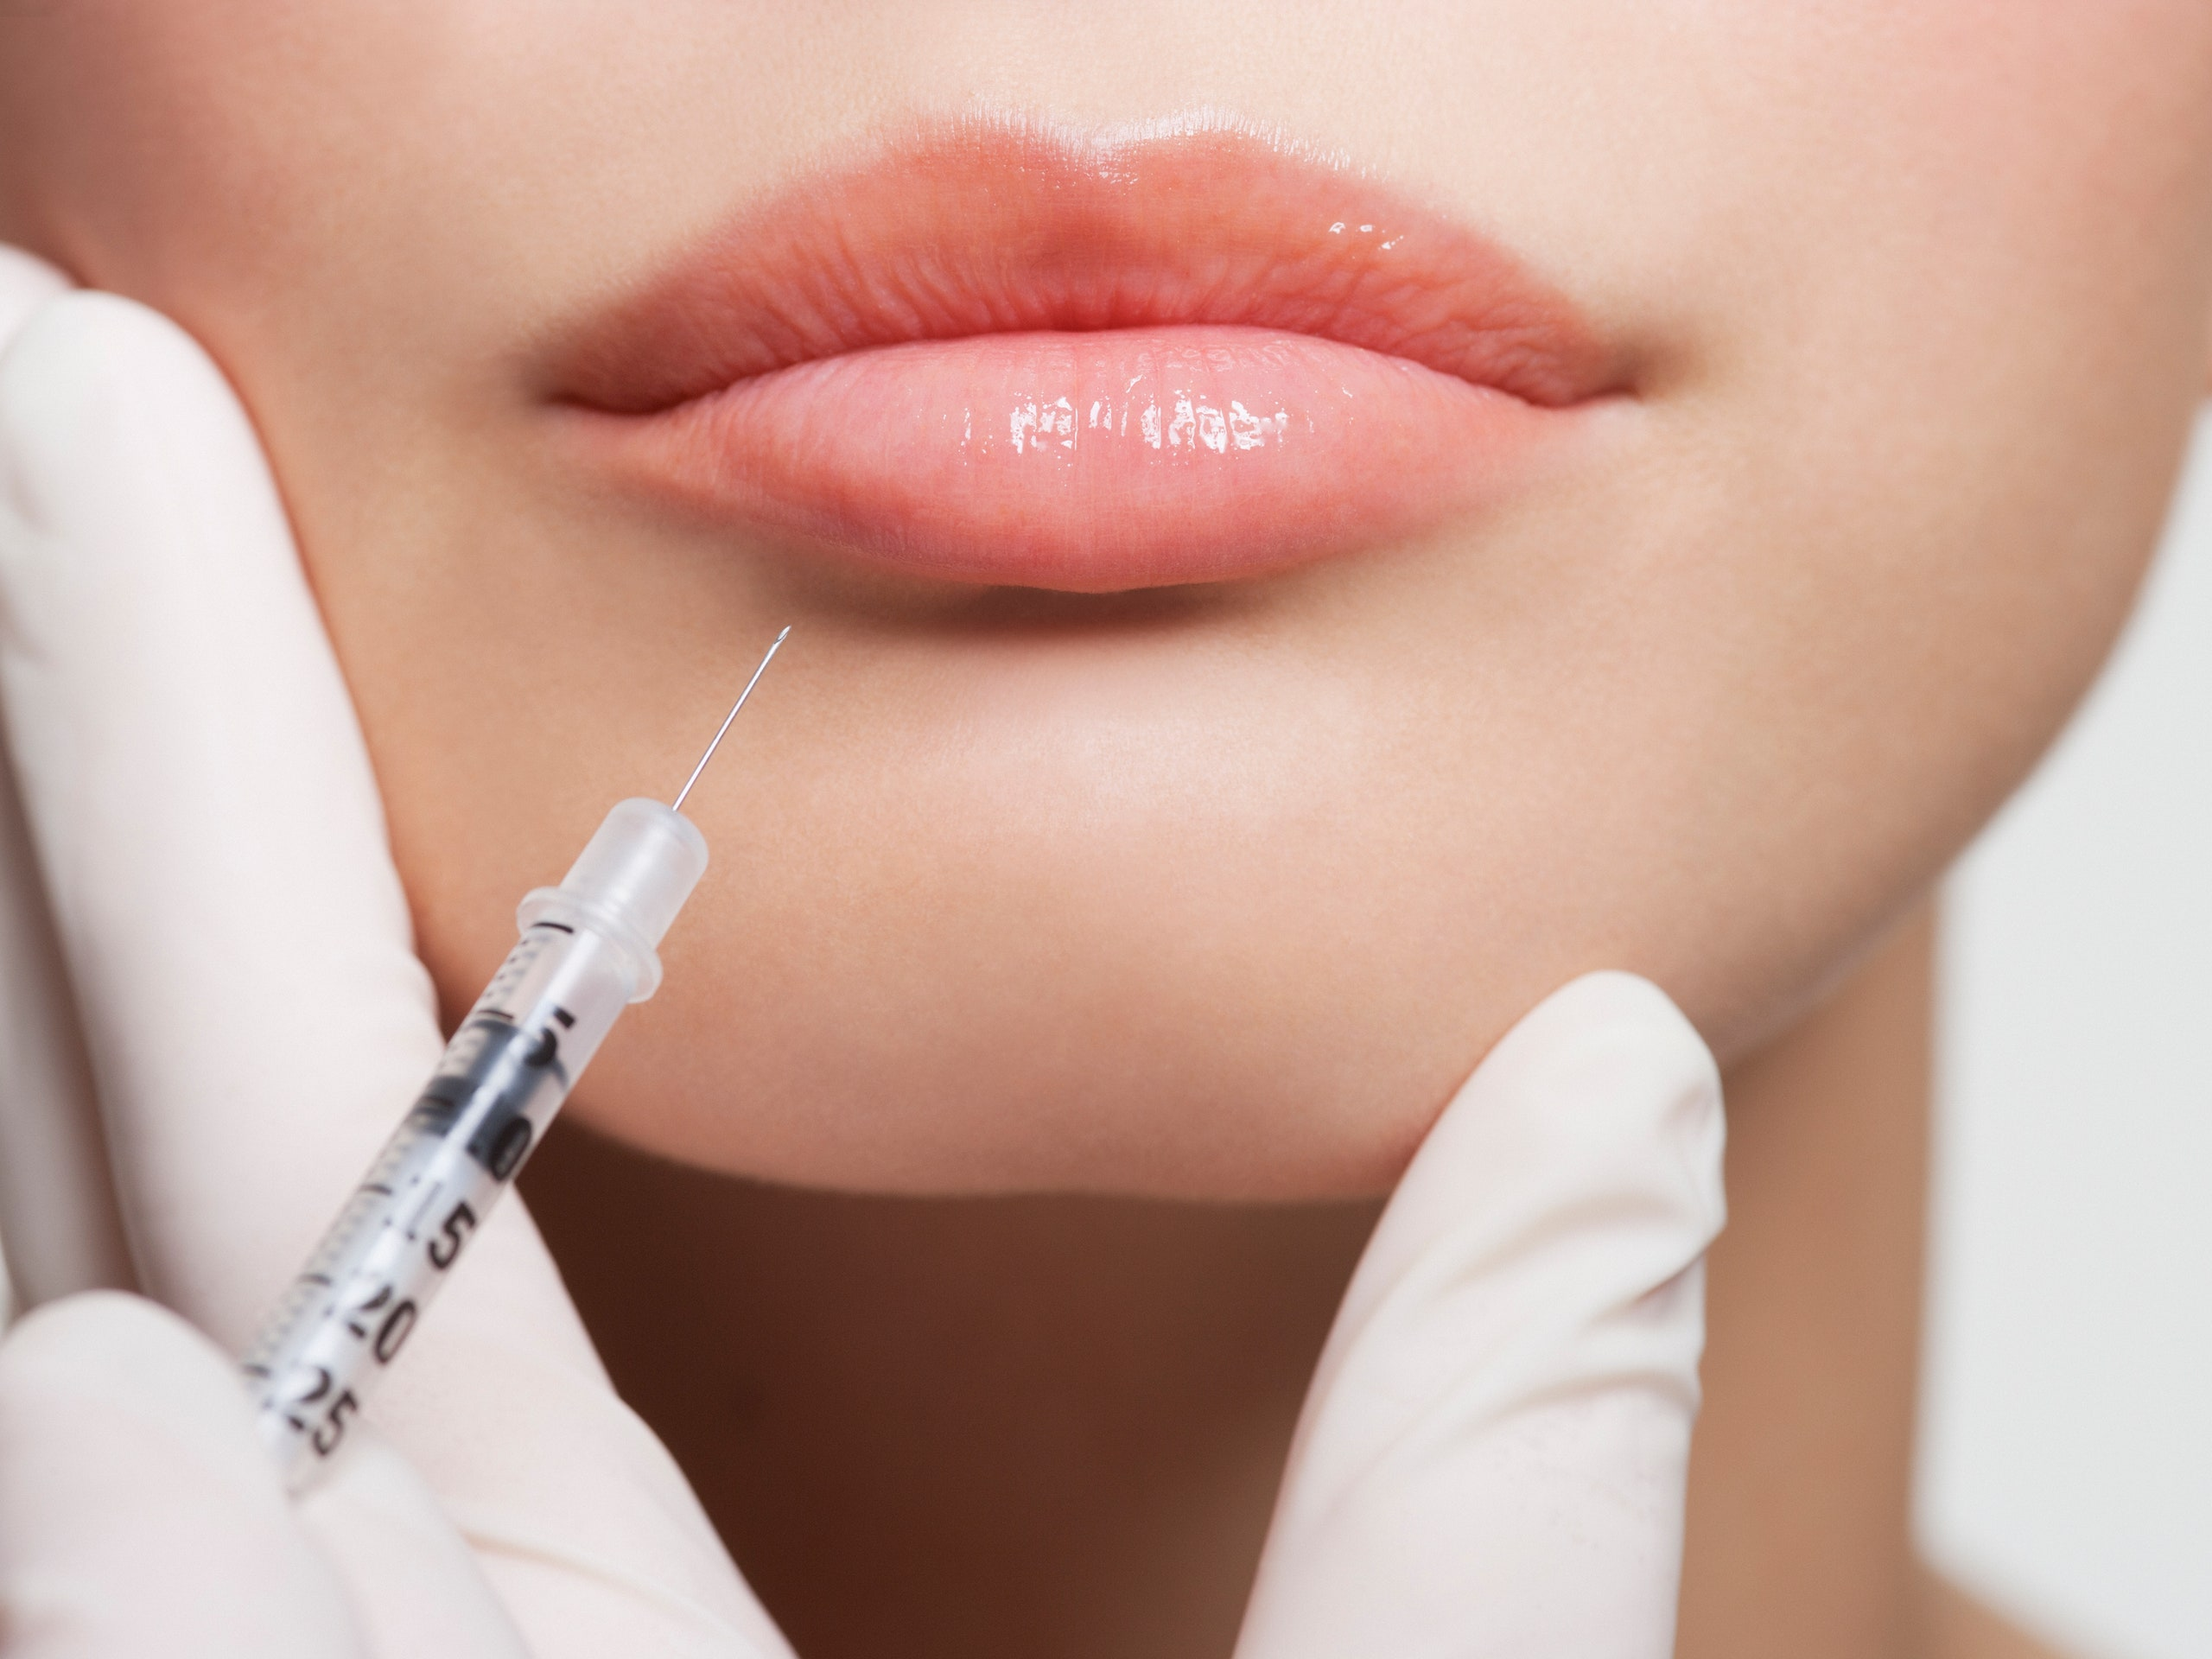 Cosmetic Botox Injections from FDA-approved Pharmacies